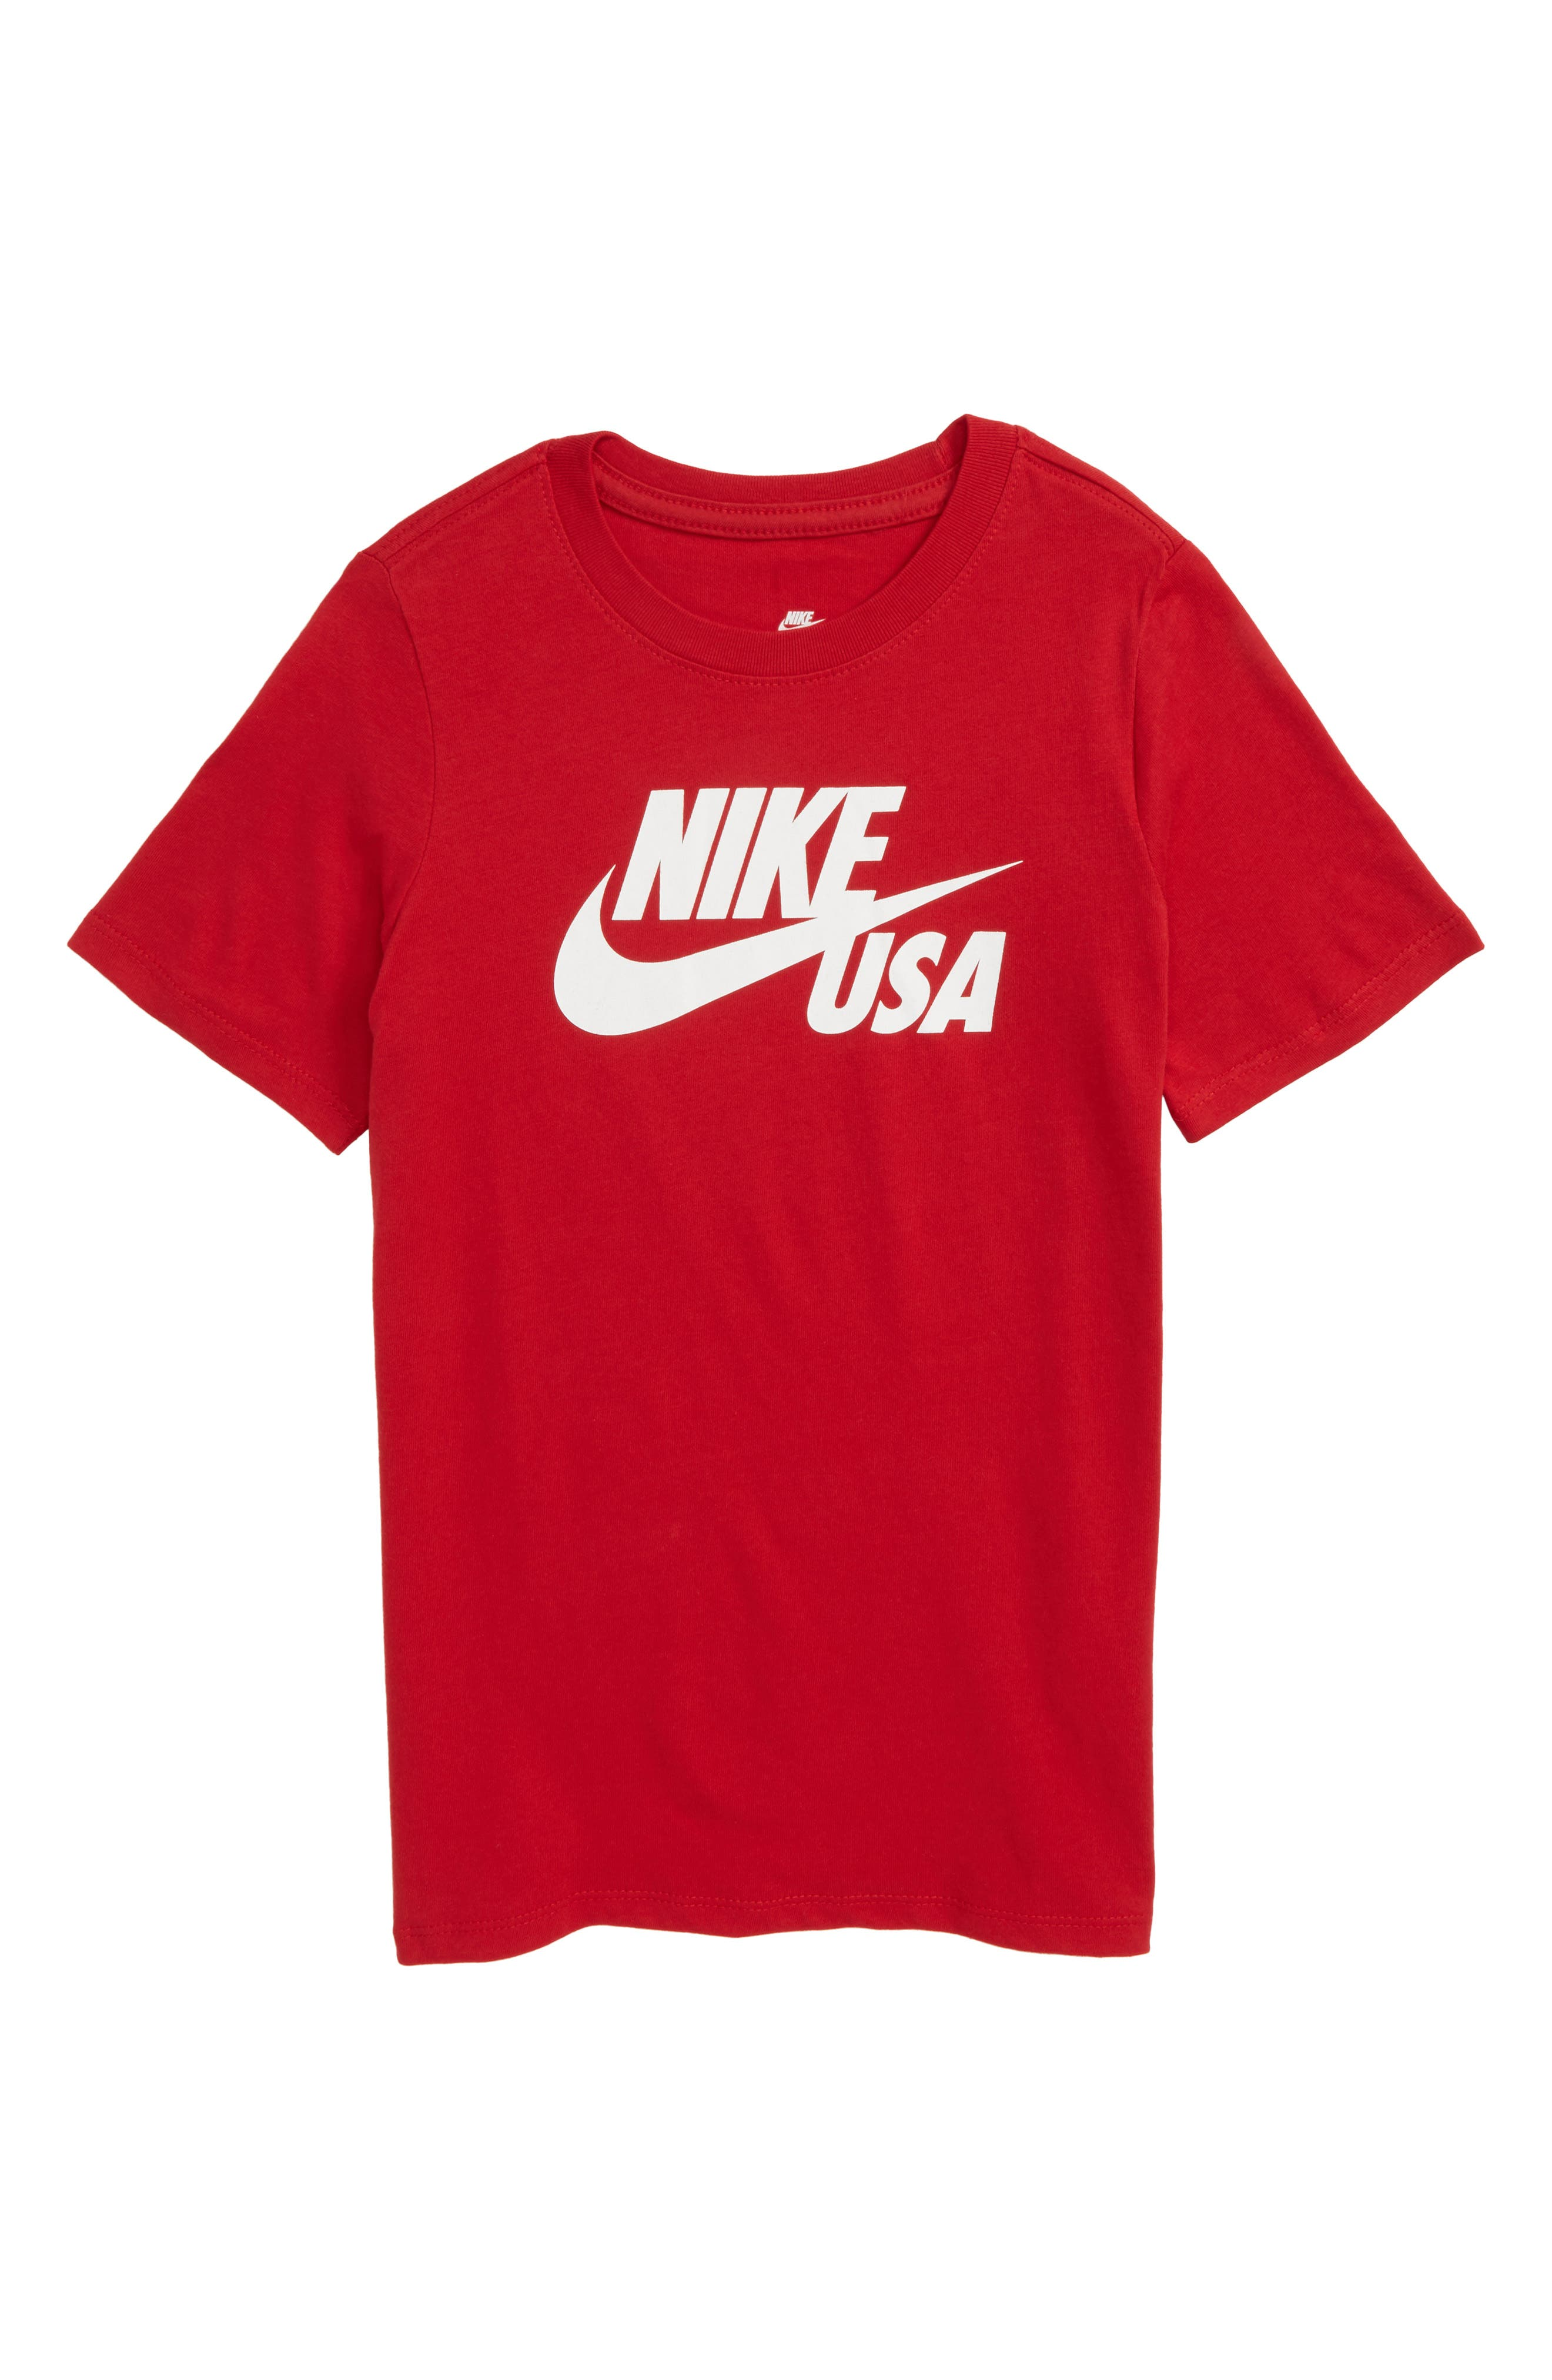 Sportswear USA Country Graphic T-Shirt,                             Main thumbnail 1, color,                             Gym Red